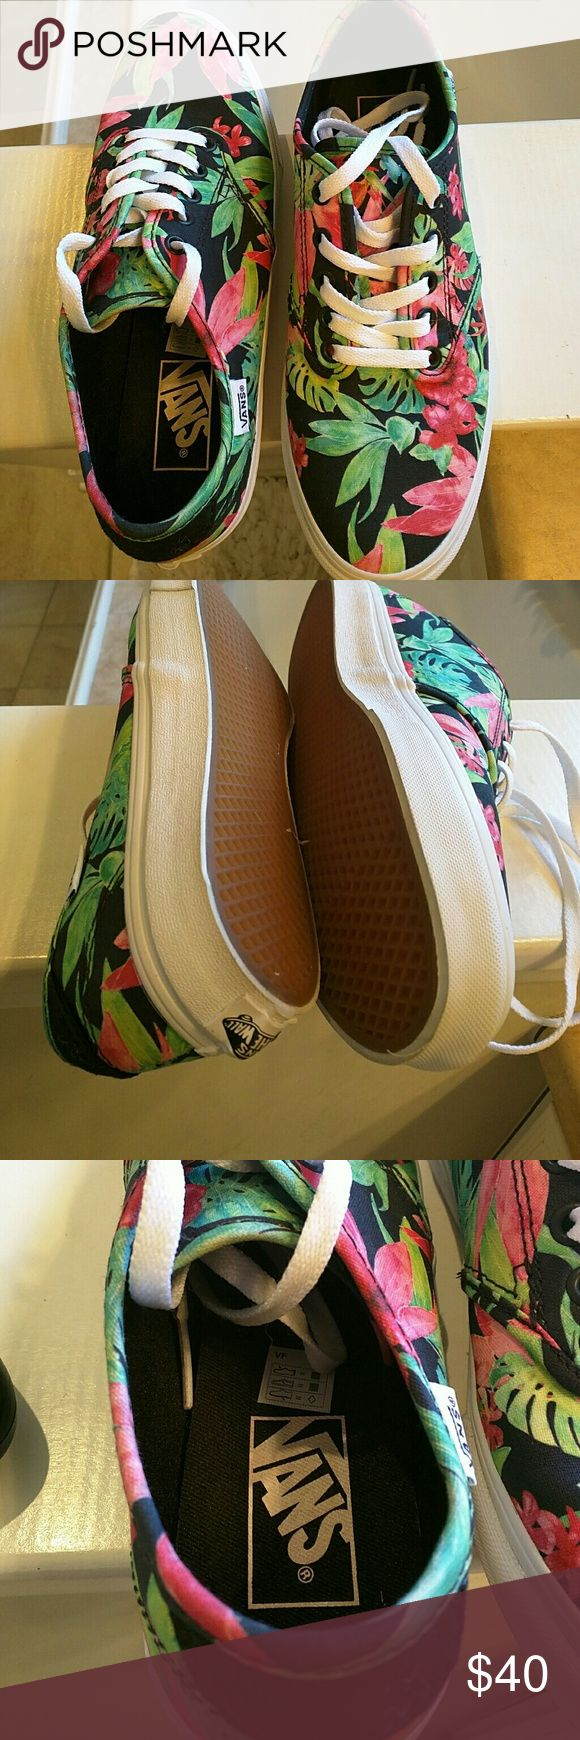 VANS tennis shoes VANS flower tennis shoes VANS Shoes Athletic Shoes